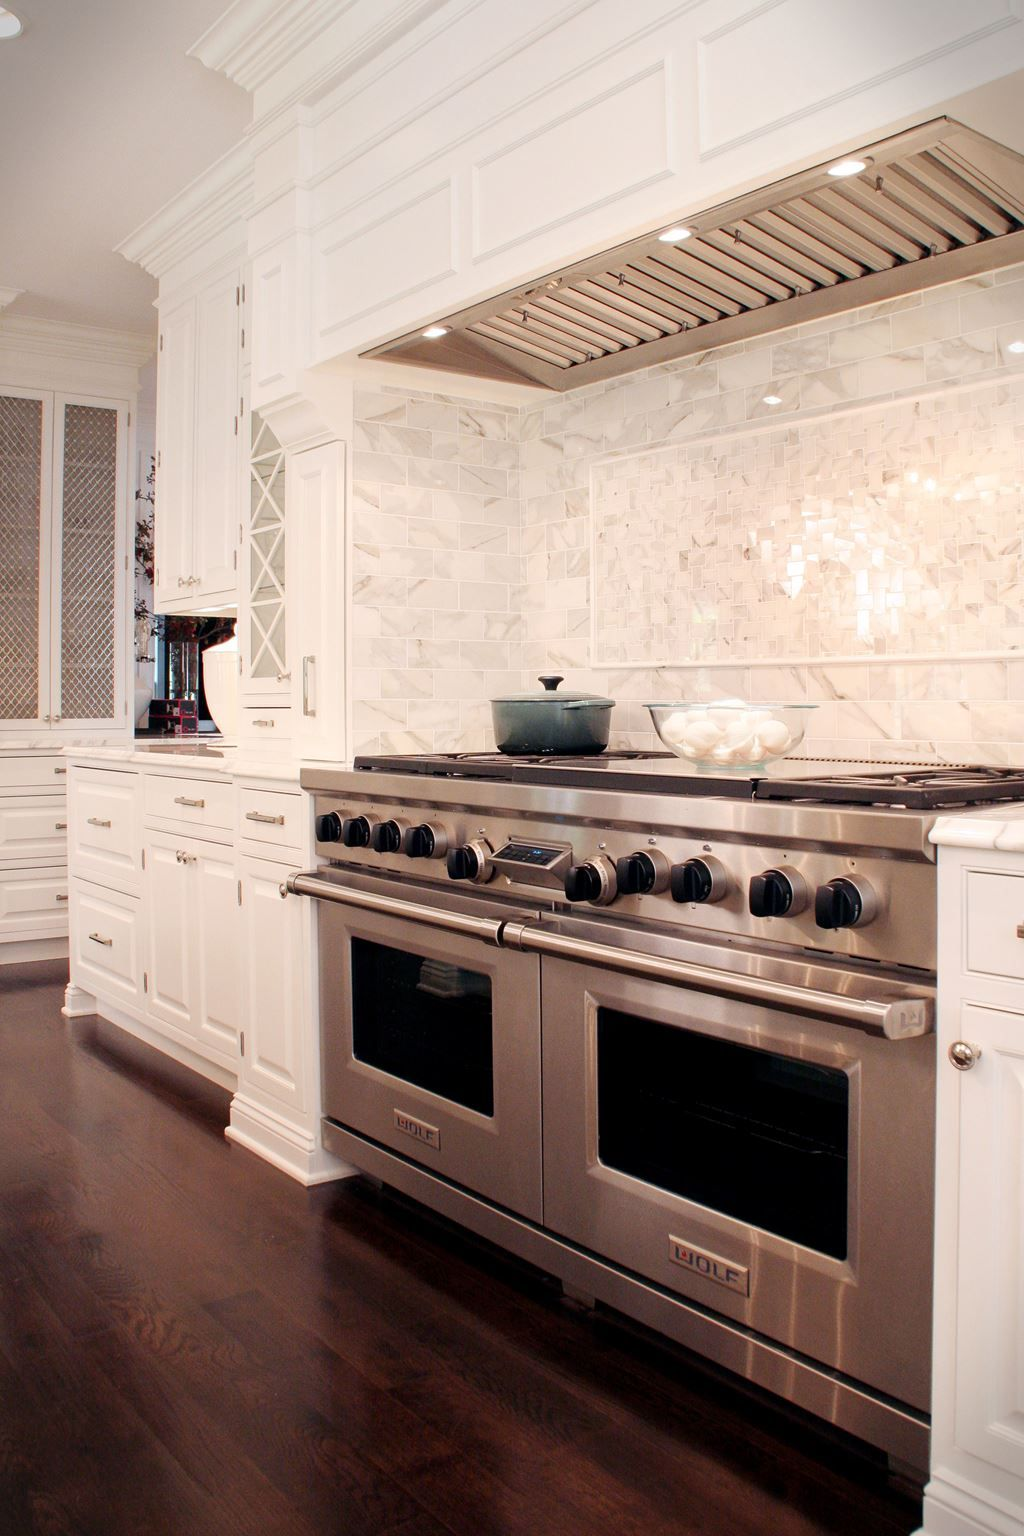 Kitchen Interior Design Ideas Classic: The Classic White Kitchen Deconstructed